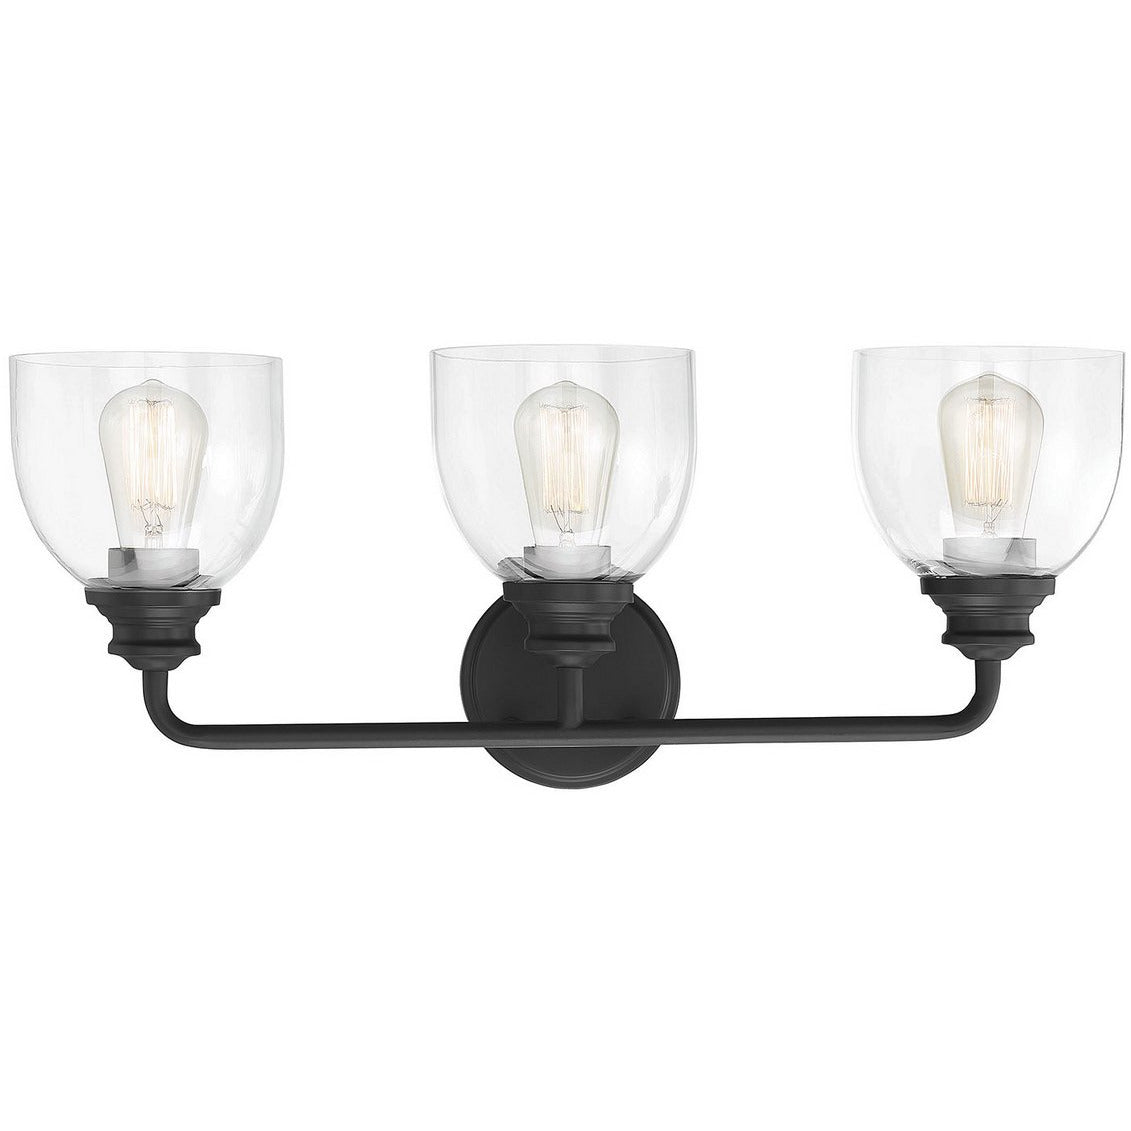 Savoy House - 8-7205-3-BK - Three Light Bath Bar - Vale - Black